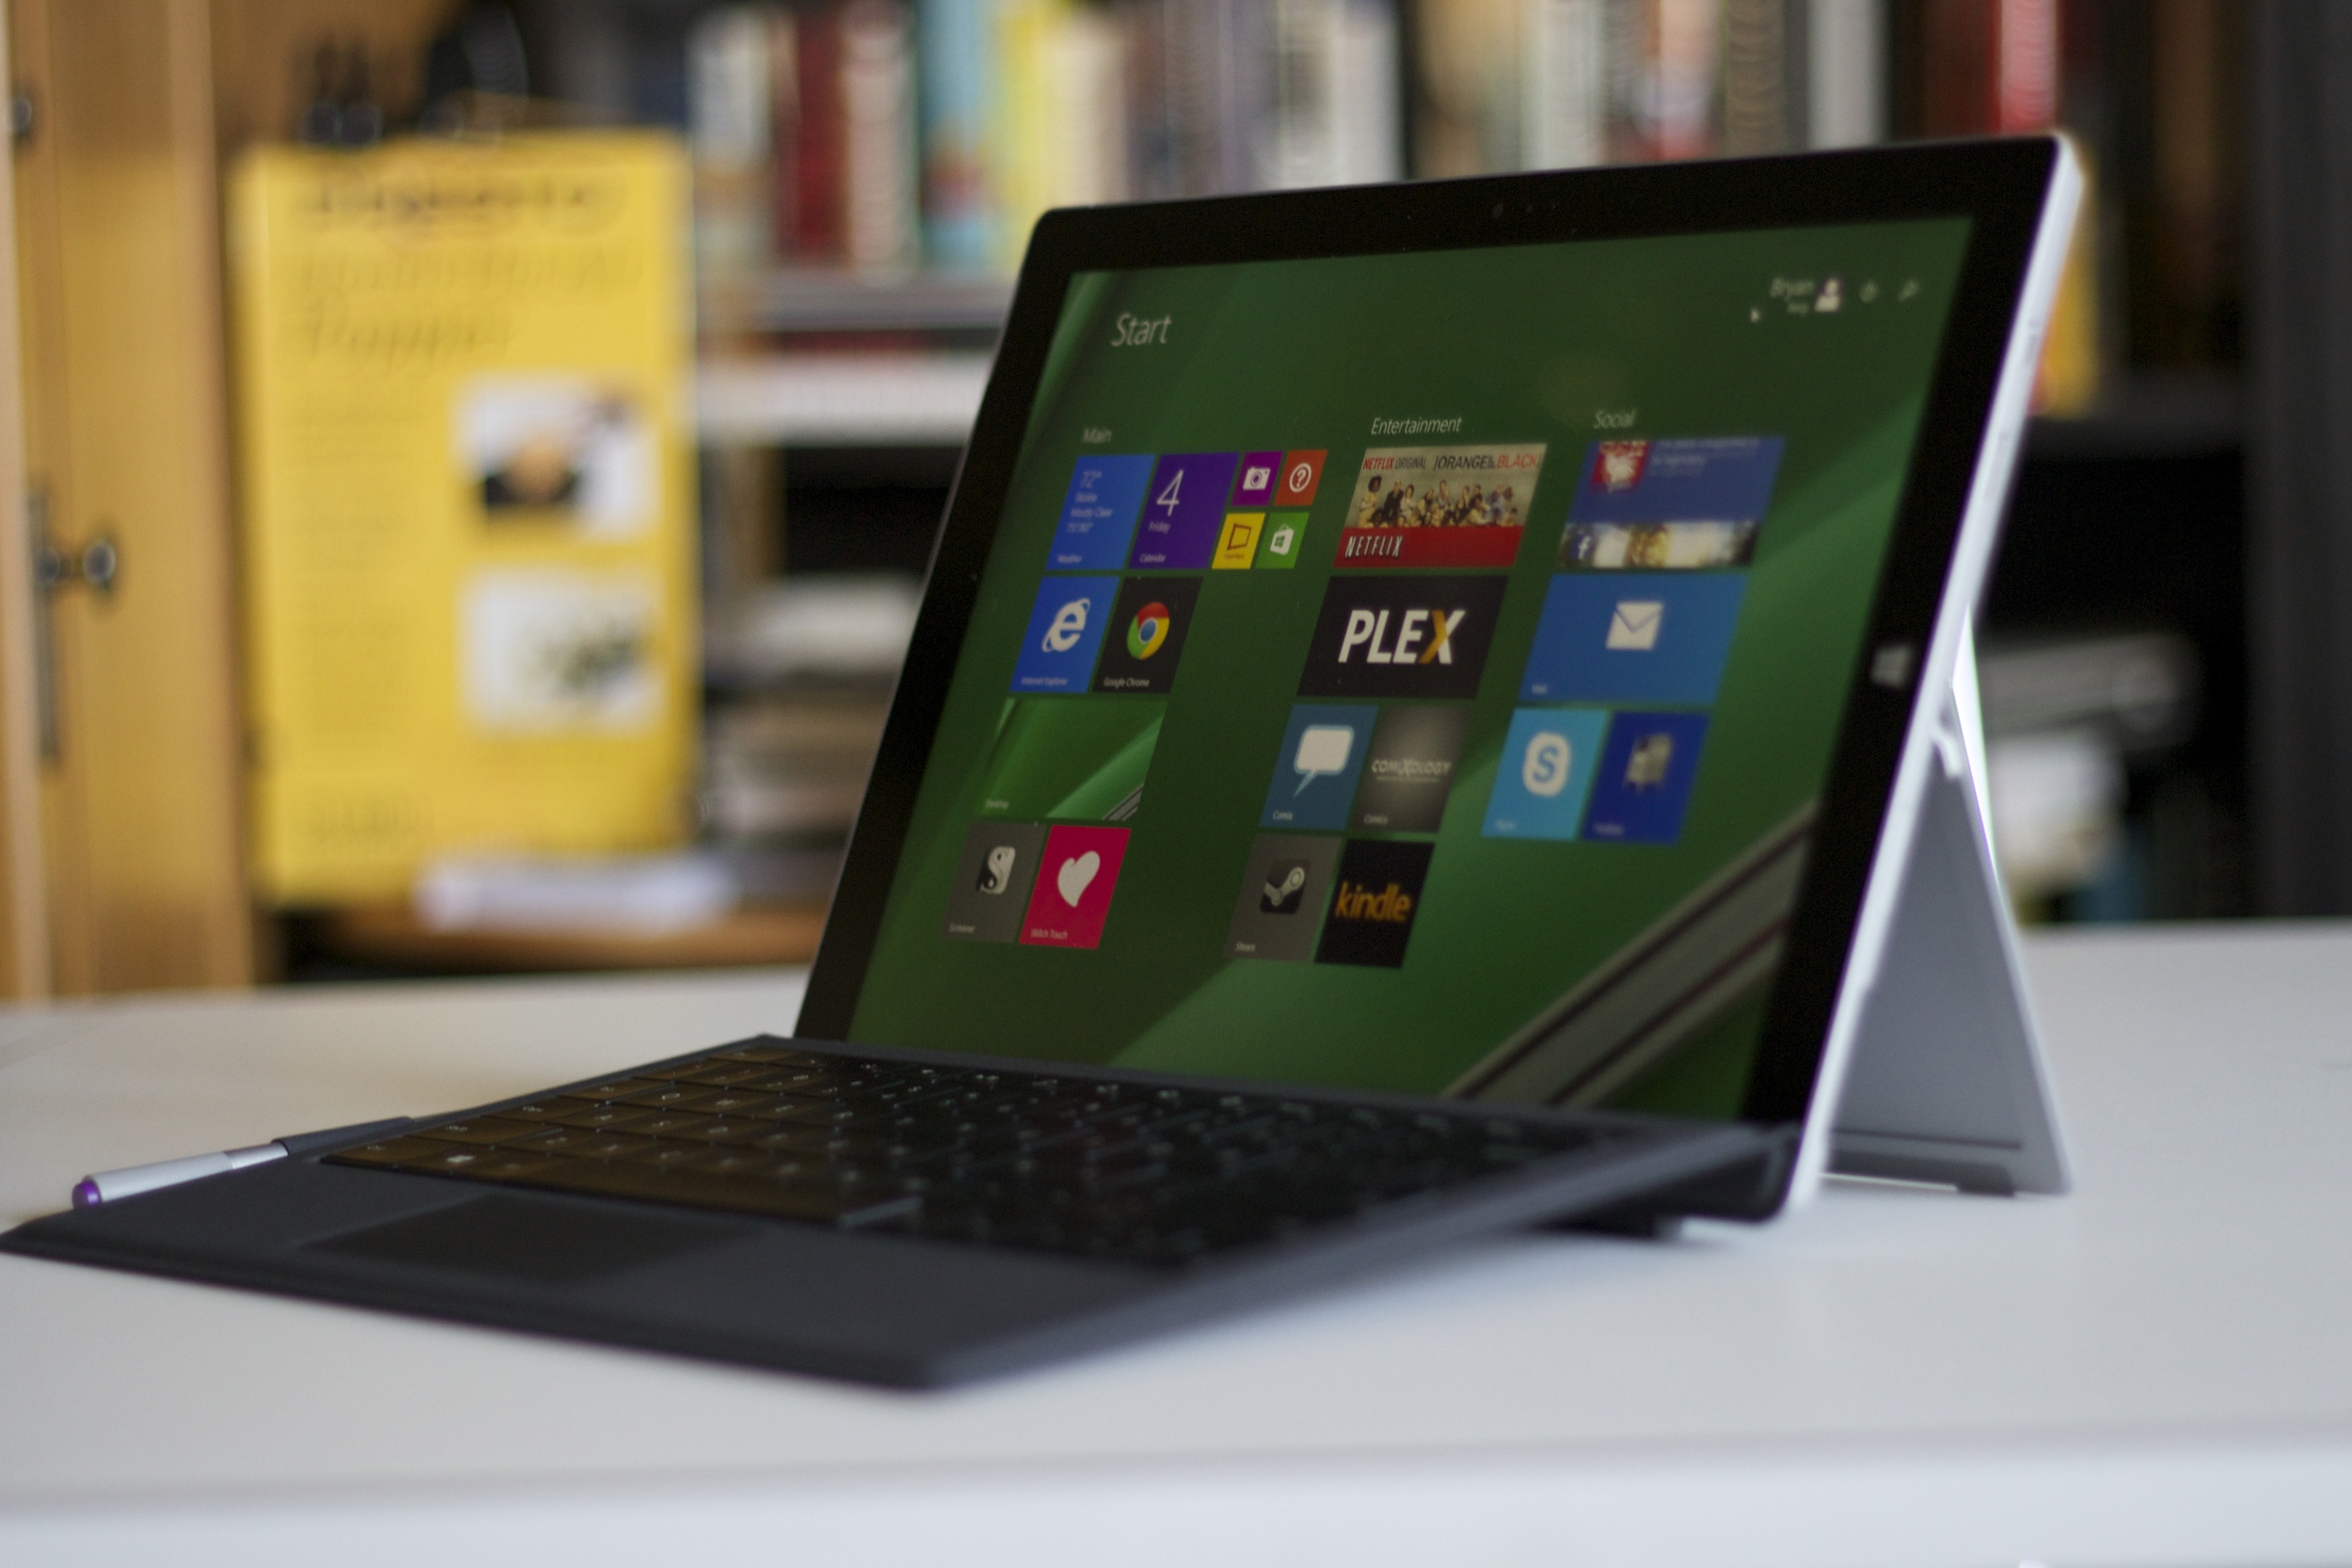 The Surface Pro 3 from another angle.